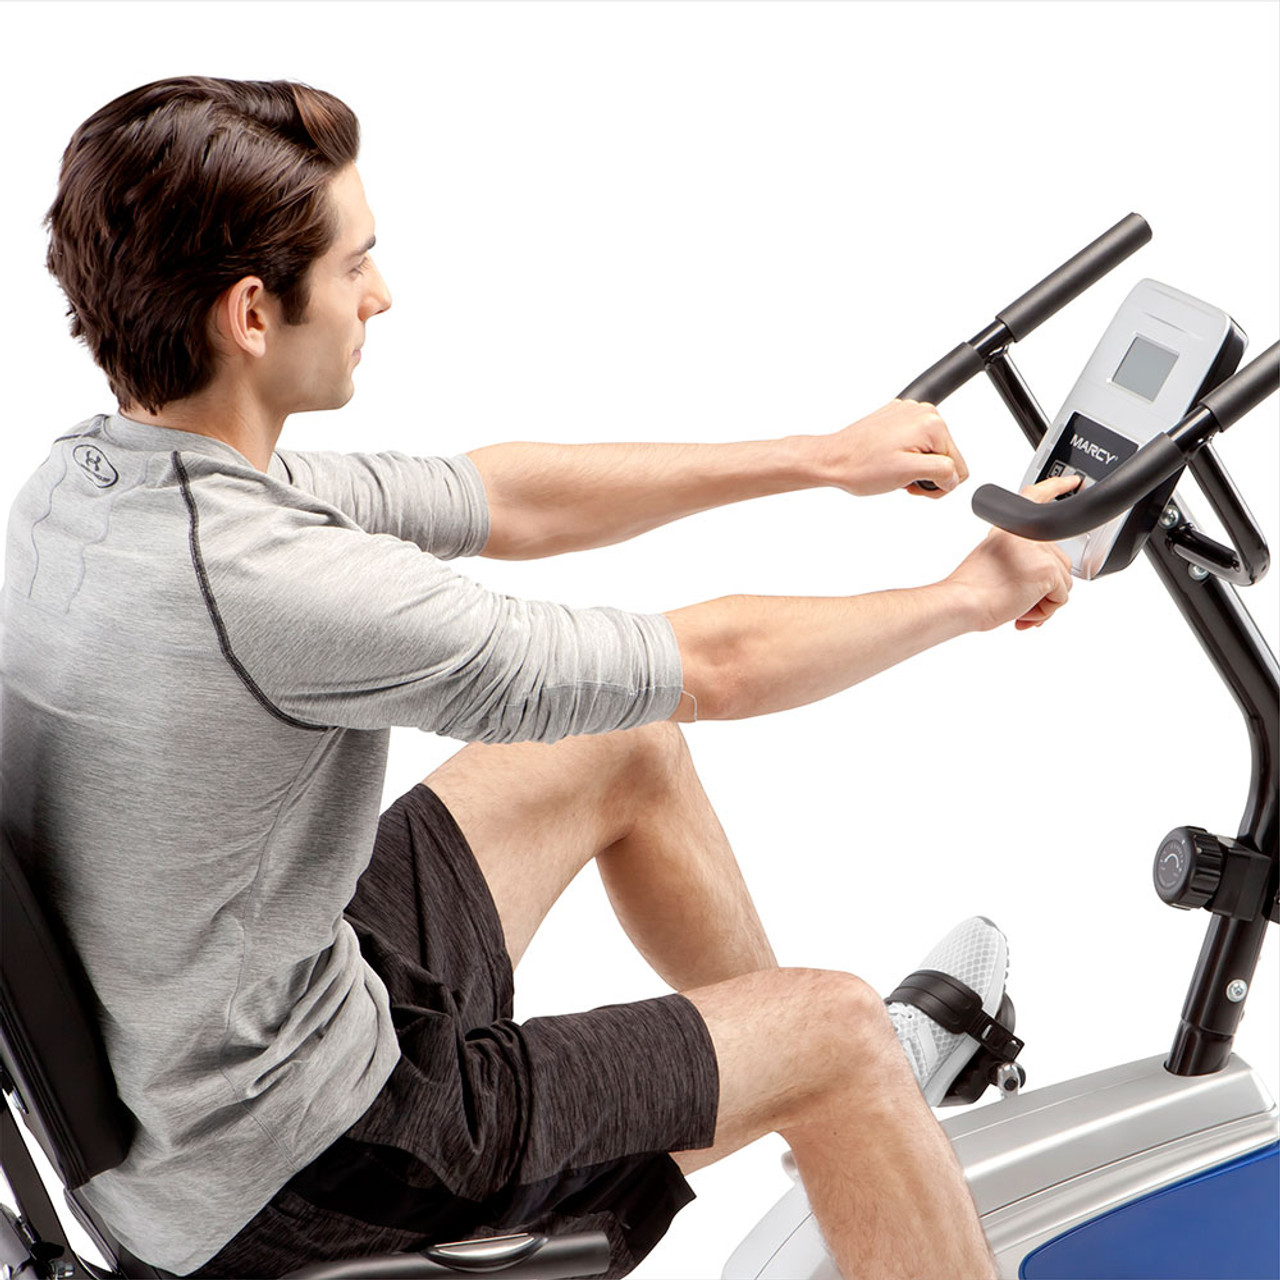 The Marcy Magnetic Recumbent Bike ME-1019R includes a monitor to track progress